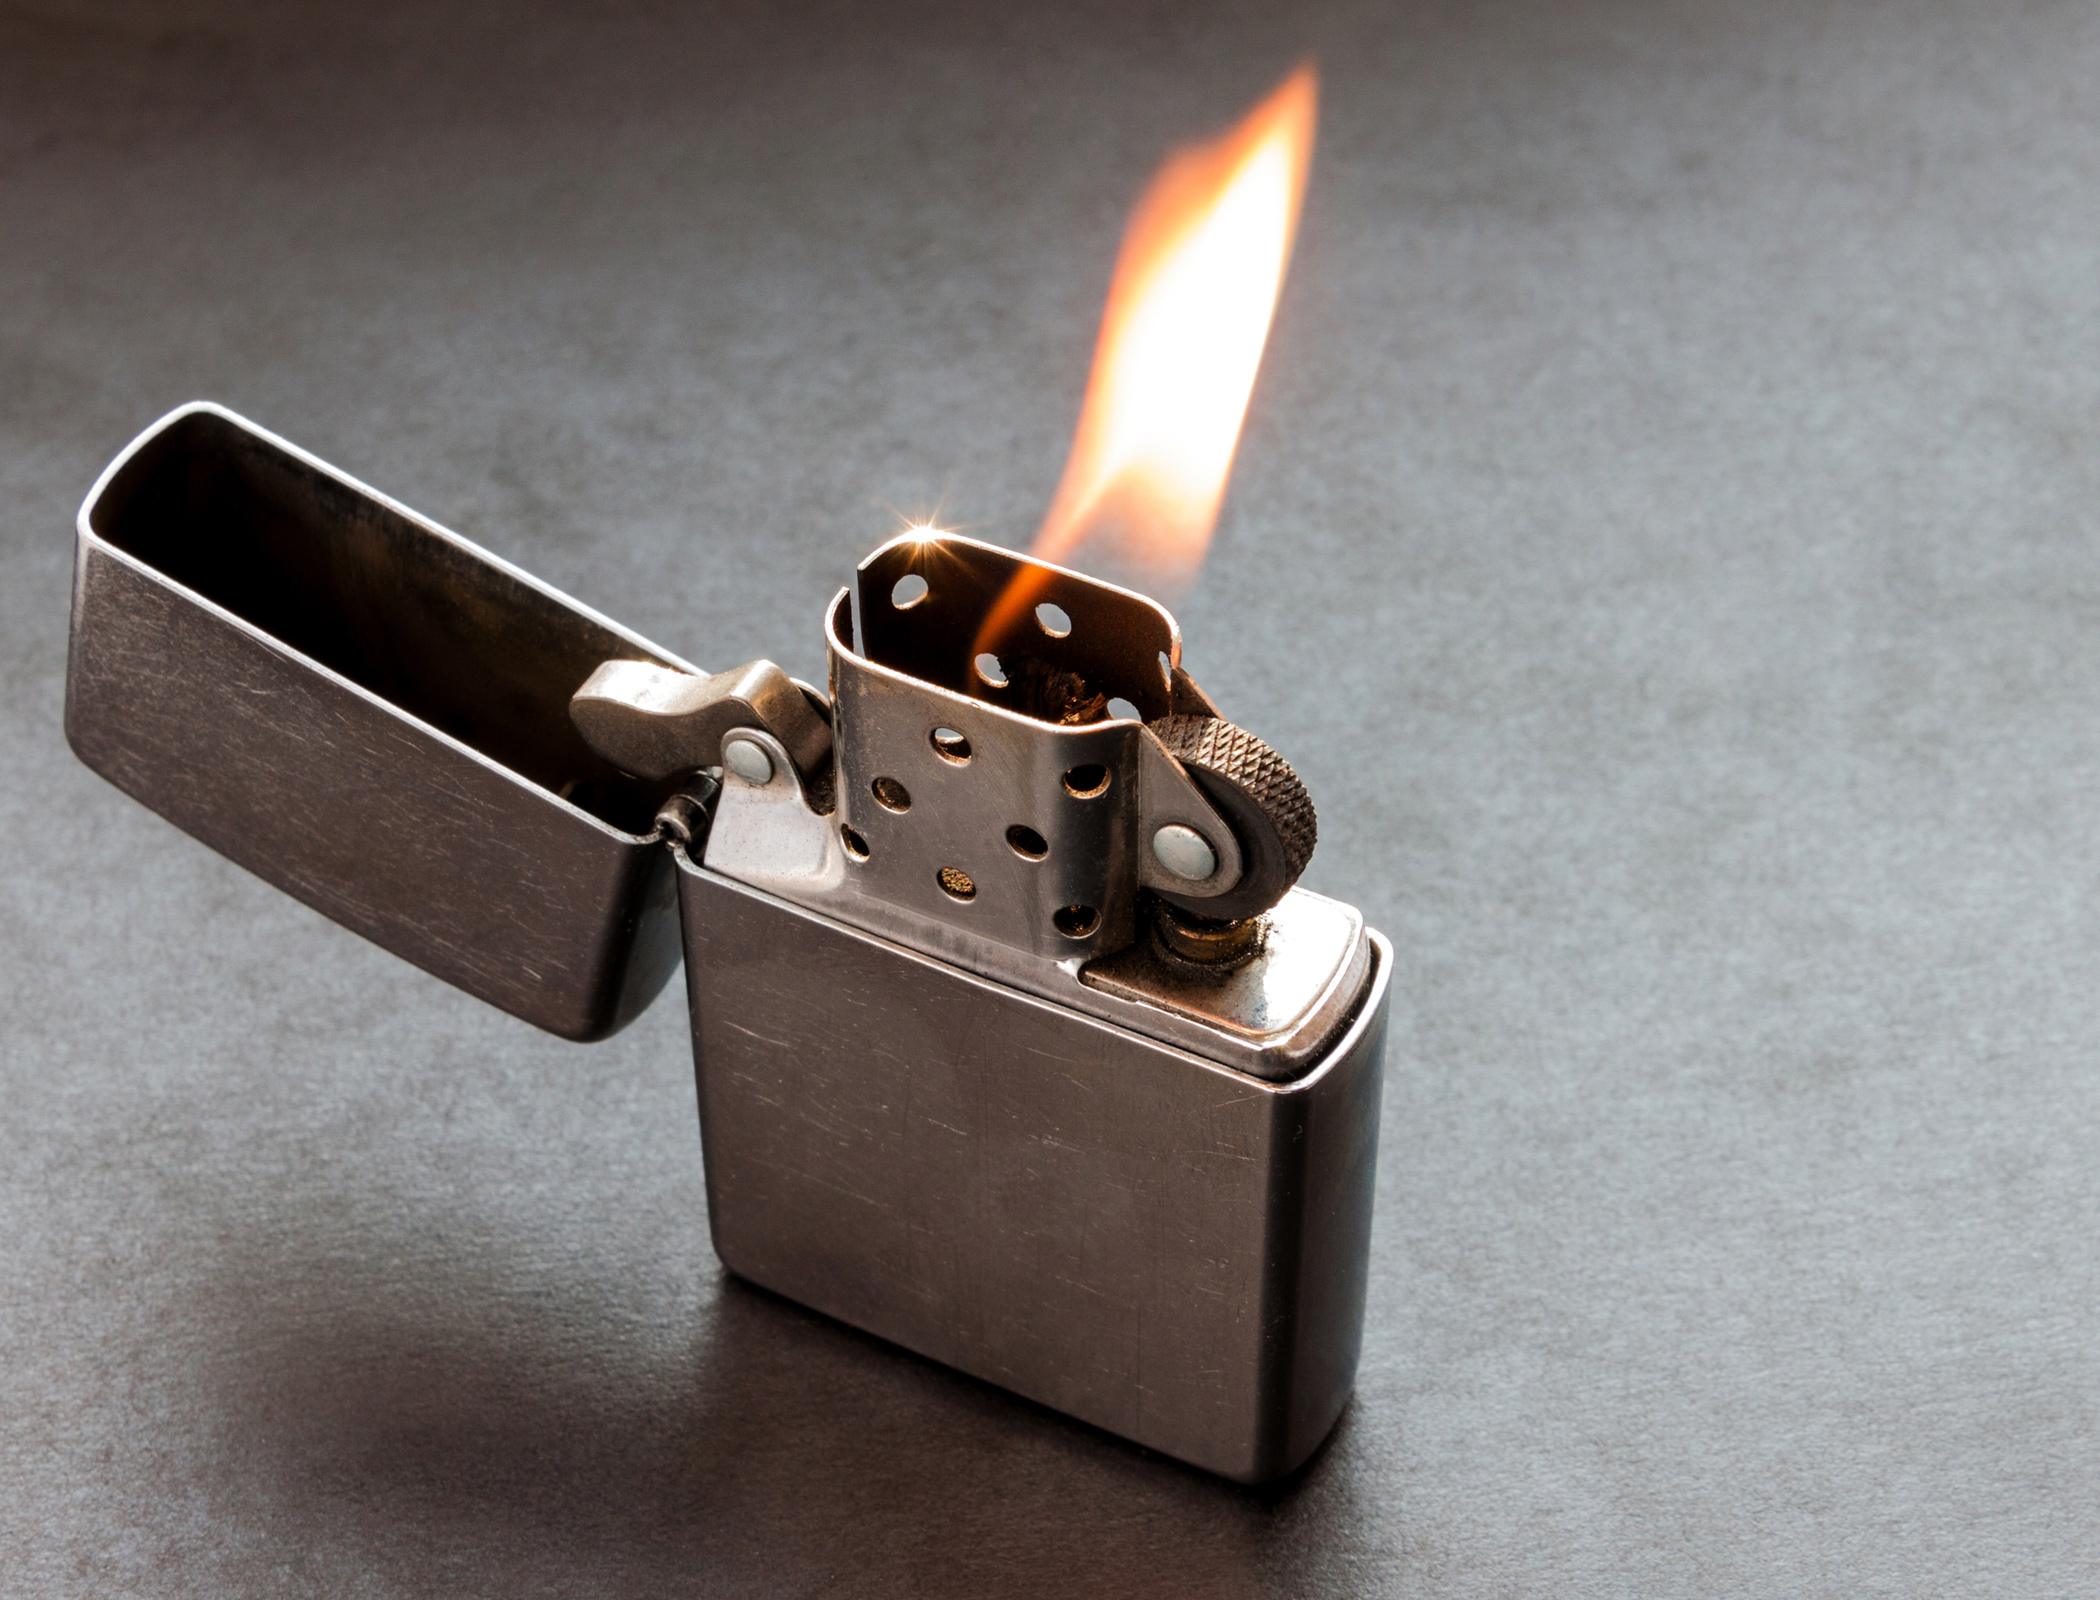 Flame on the story of the classic Zippo lighter